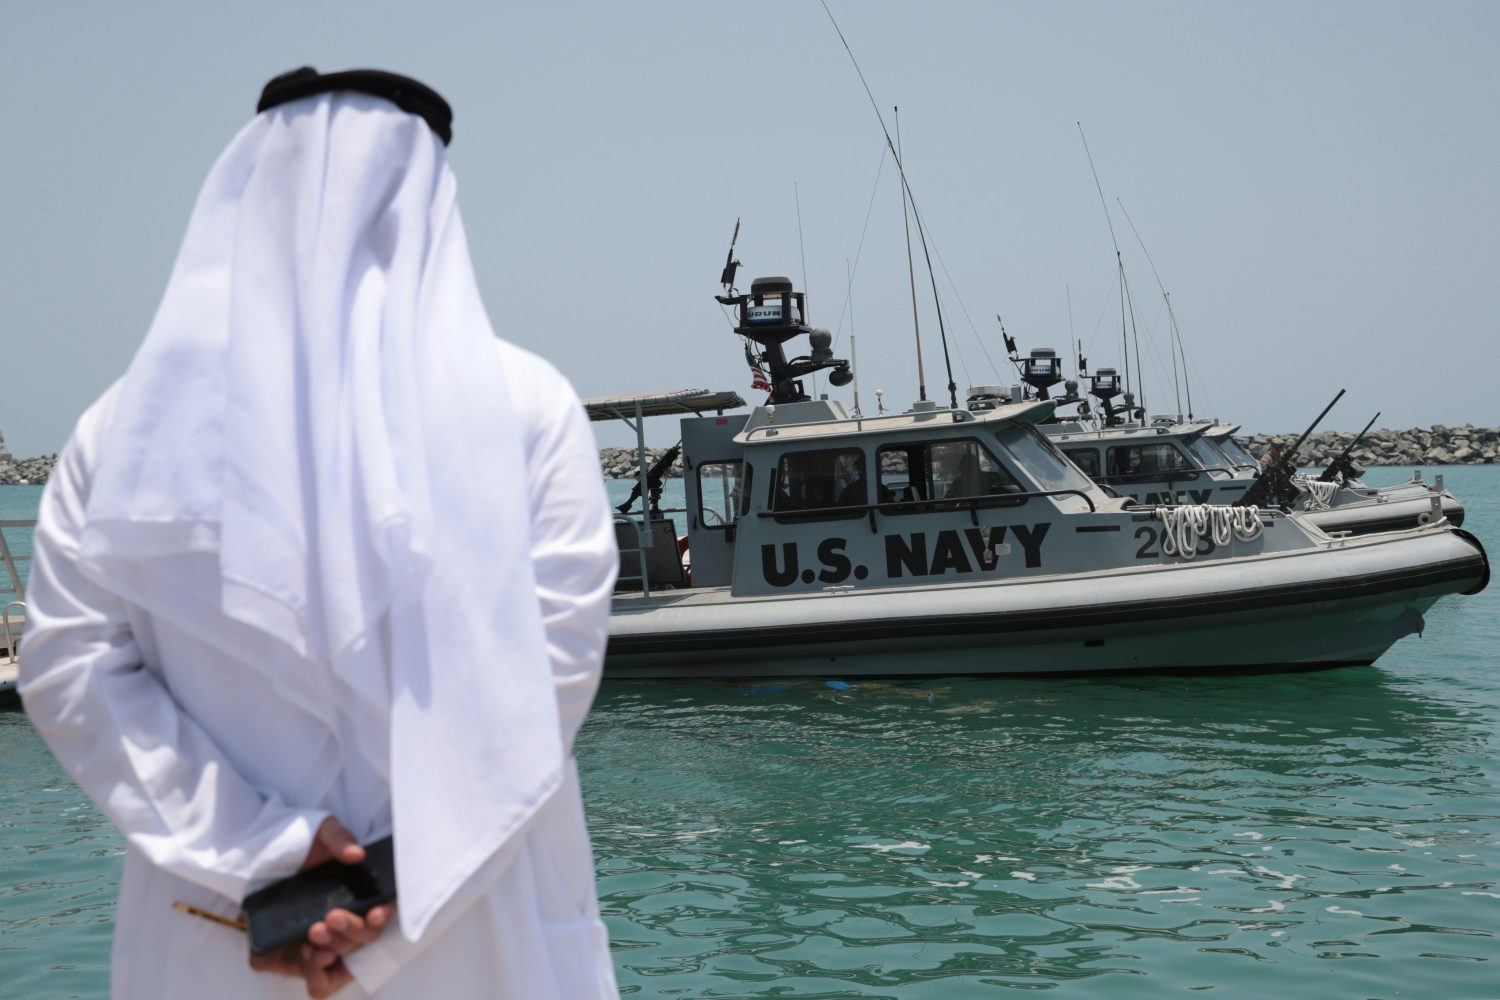 An Emirati official watches members of the U.S. Navy Fifth Fleet as they prepare to escort journalists to the Japanese-owned Kokuka Courageous tanker at a U.S. NAVCENT facility near the port of Fujairah, United Arab Emirates June 19, 2019. REUTERS/Christopher Pike